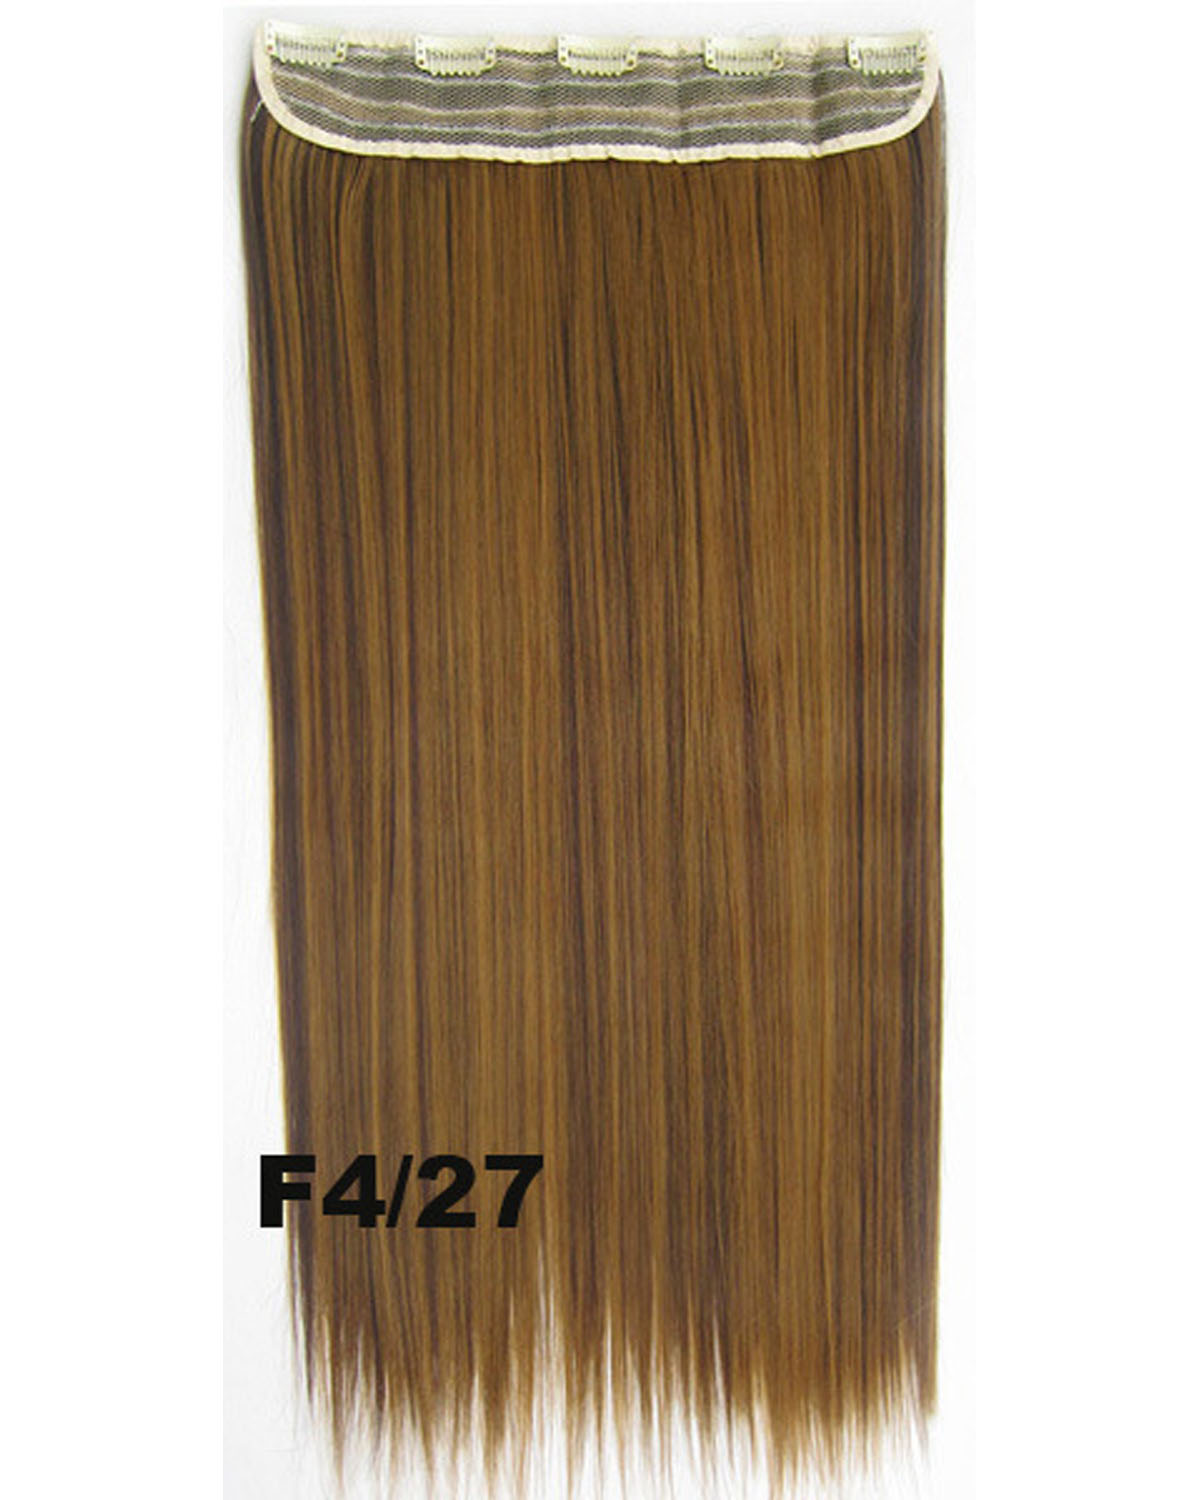 24 Inch Female Clean and Neat Long and Straight Hot-Sale One Piece 5 Clips Clip in Synthetic Hair Extension F4/27